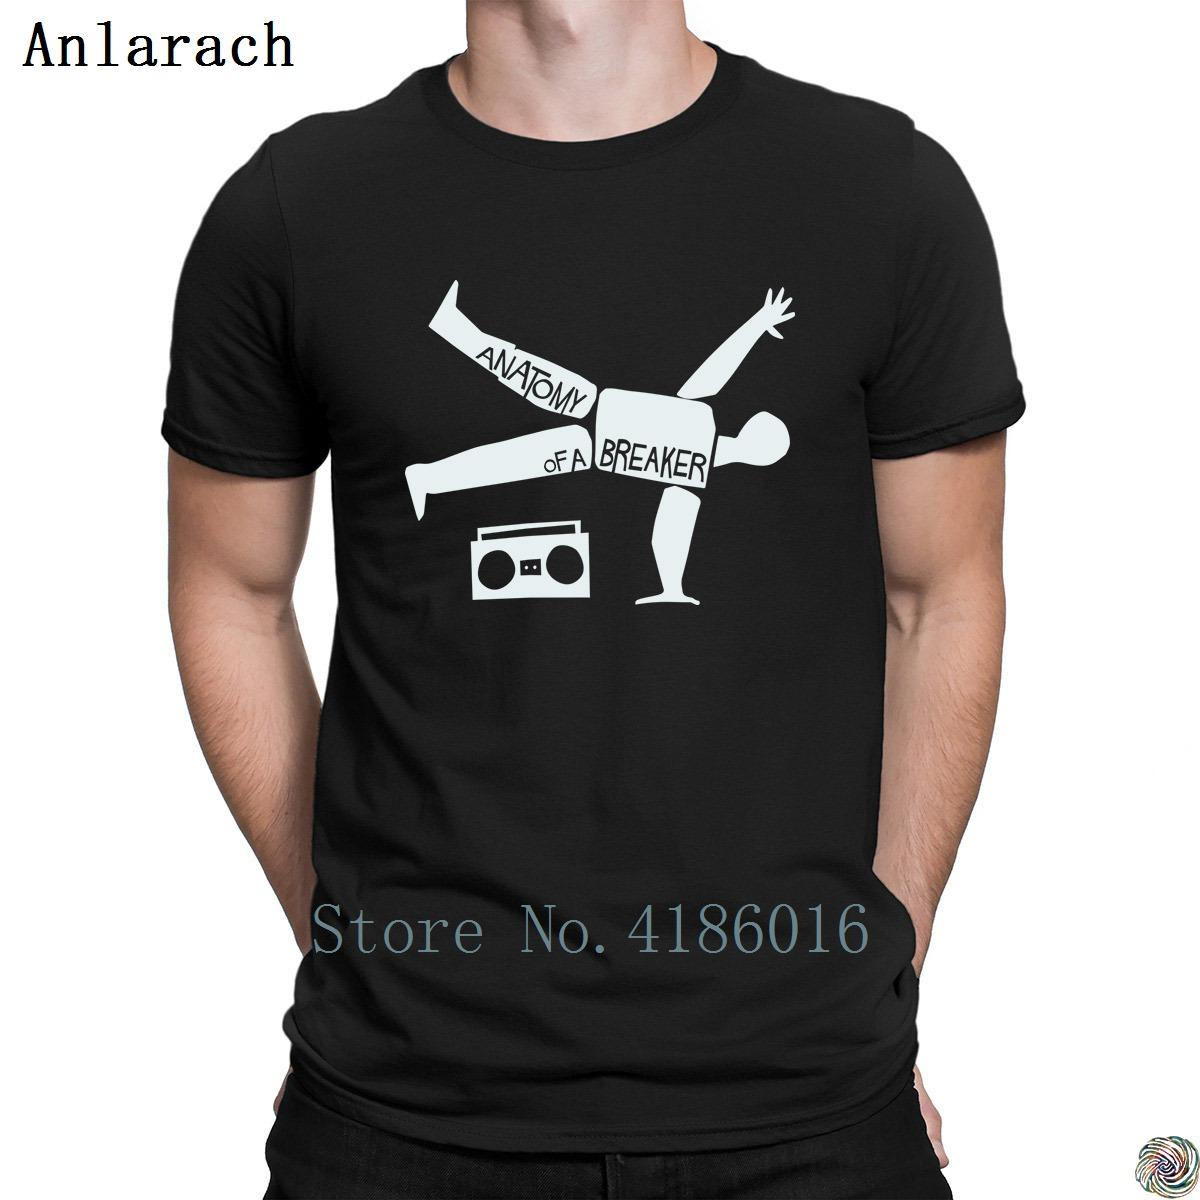 Anatomy A Breaker T Shirt Humor Gents Summer Top 2018 T Shirt For ...